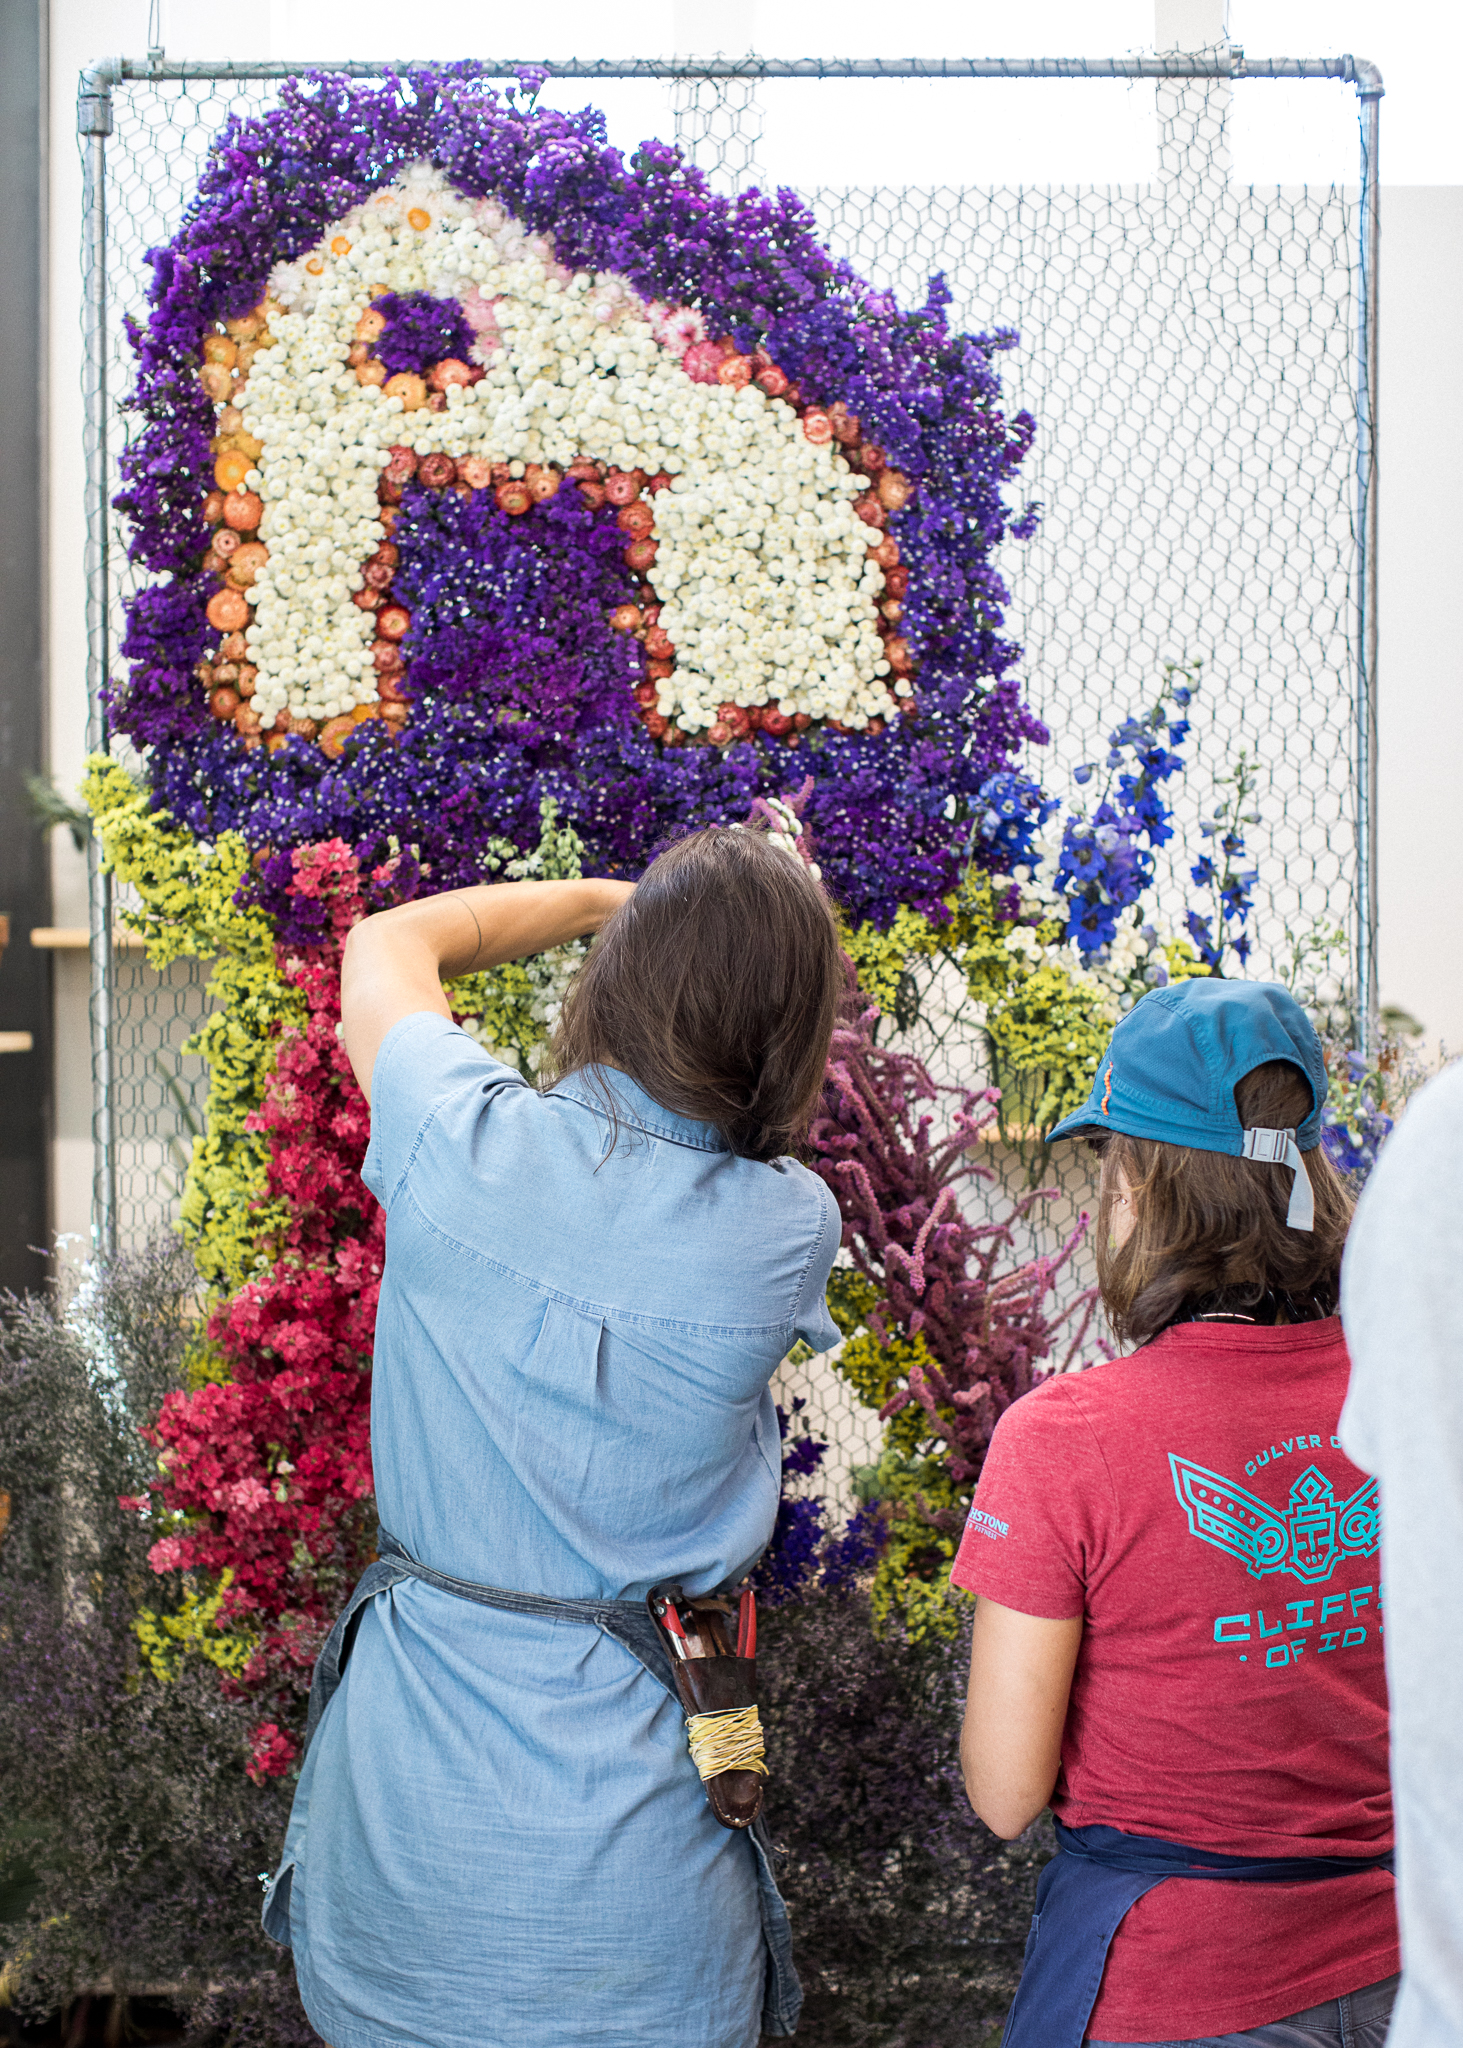 83326d39e7b54 Isabella Thorndike Church carefully adds her locally-grown blooms into the  chicken-wire base of her installation for Fry Family Farm (c) Juliet Ashley  ...